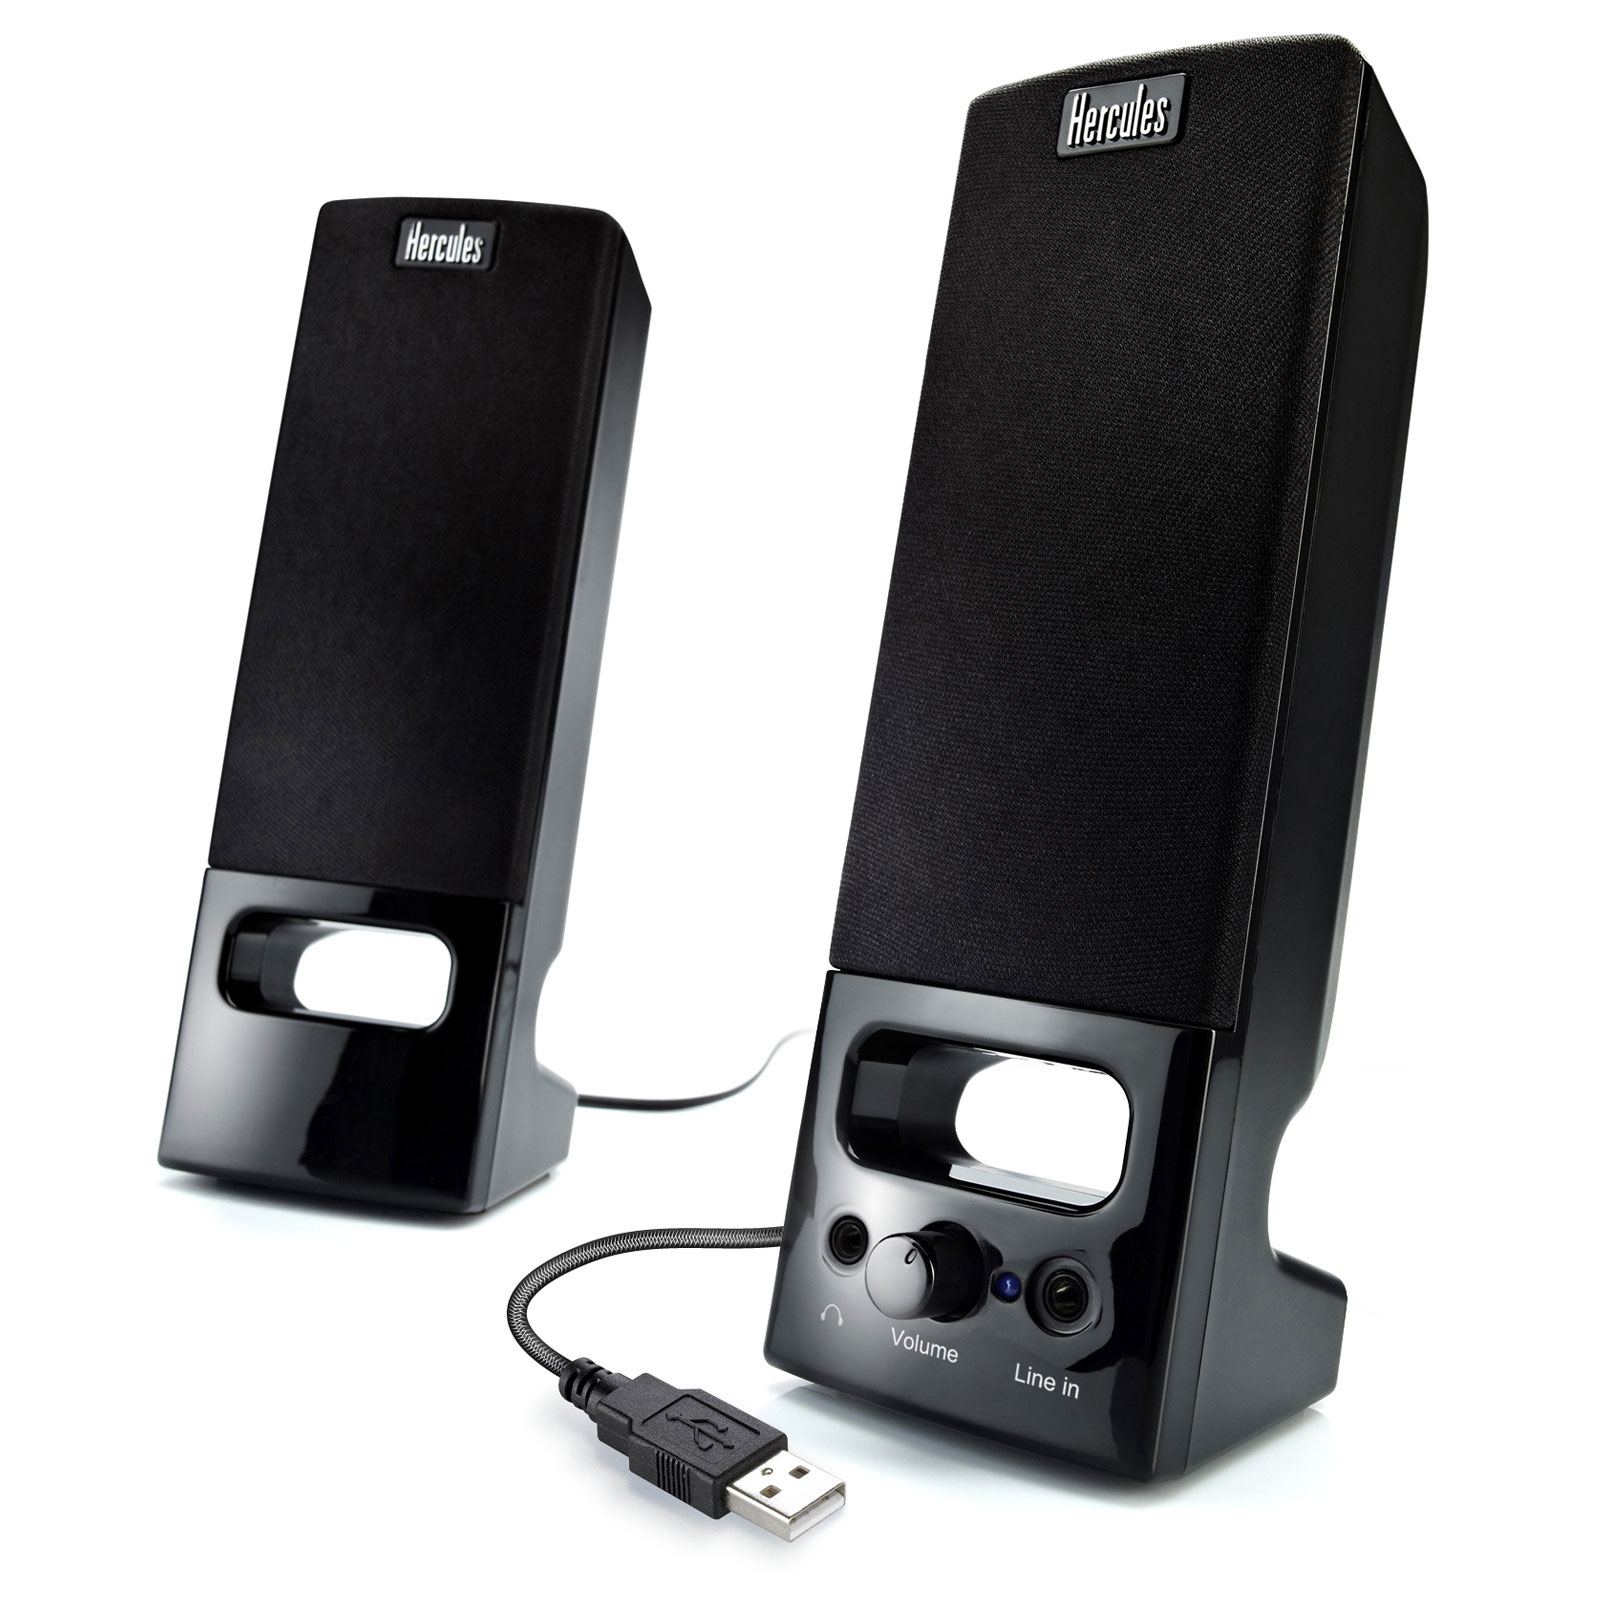 hercules xps 2 0 35 usb enceinte pc hercules sur. Black Bedroom Furniture Sets. Home Design Ideas